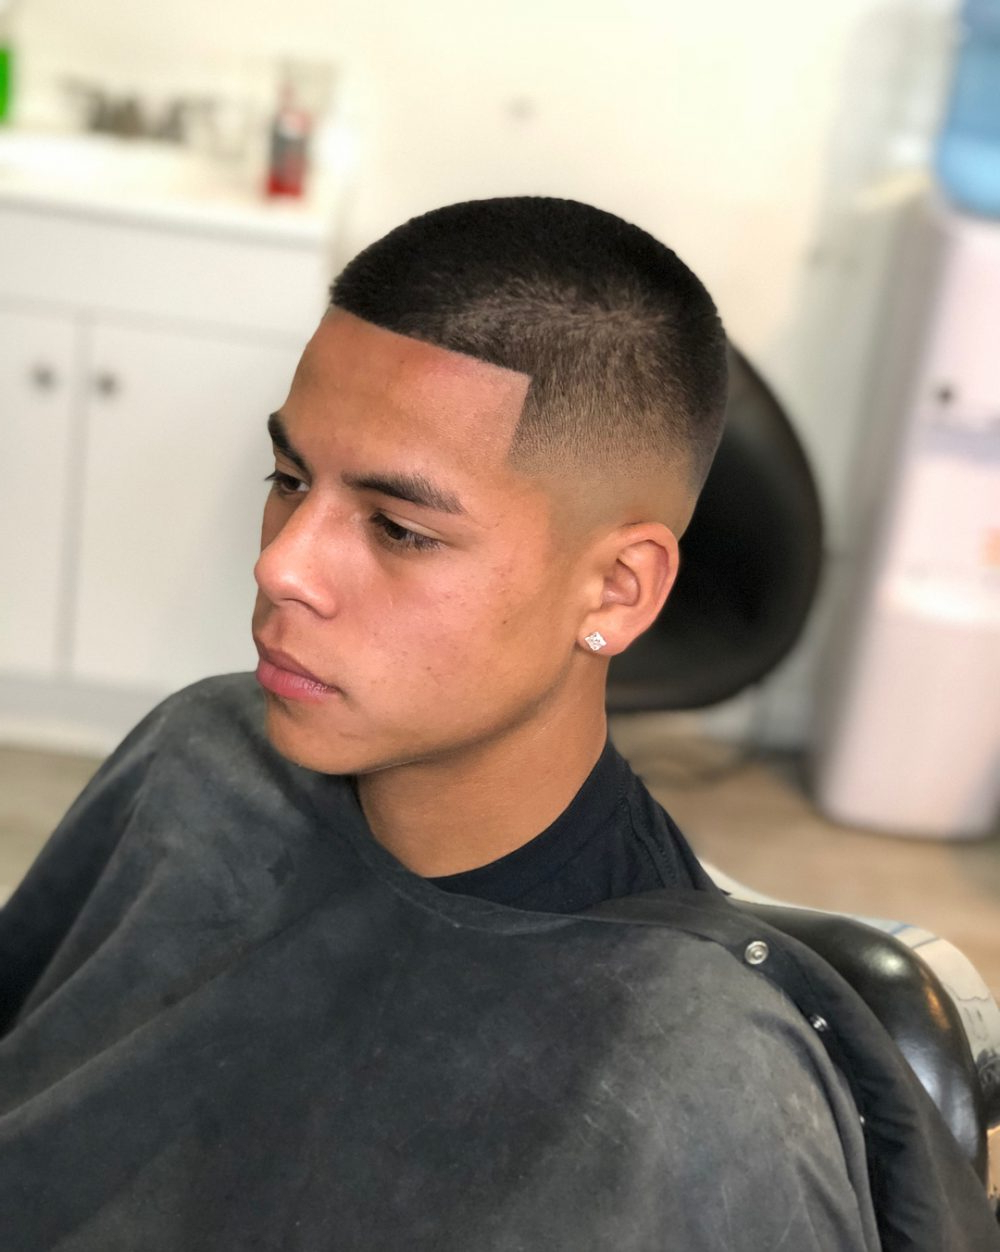 49 Best Men's Haircuts & Hairstyles For Short Hair In 2018 Intended For Short Straight Hairstyles For Men (View 14 of 25)